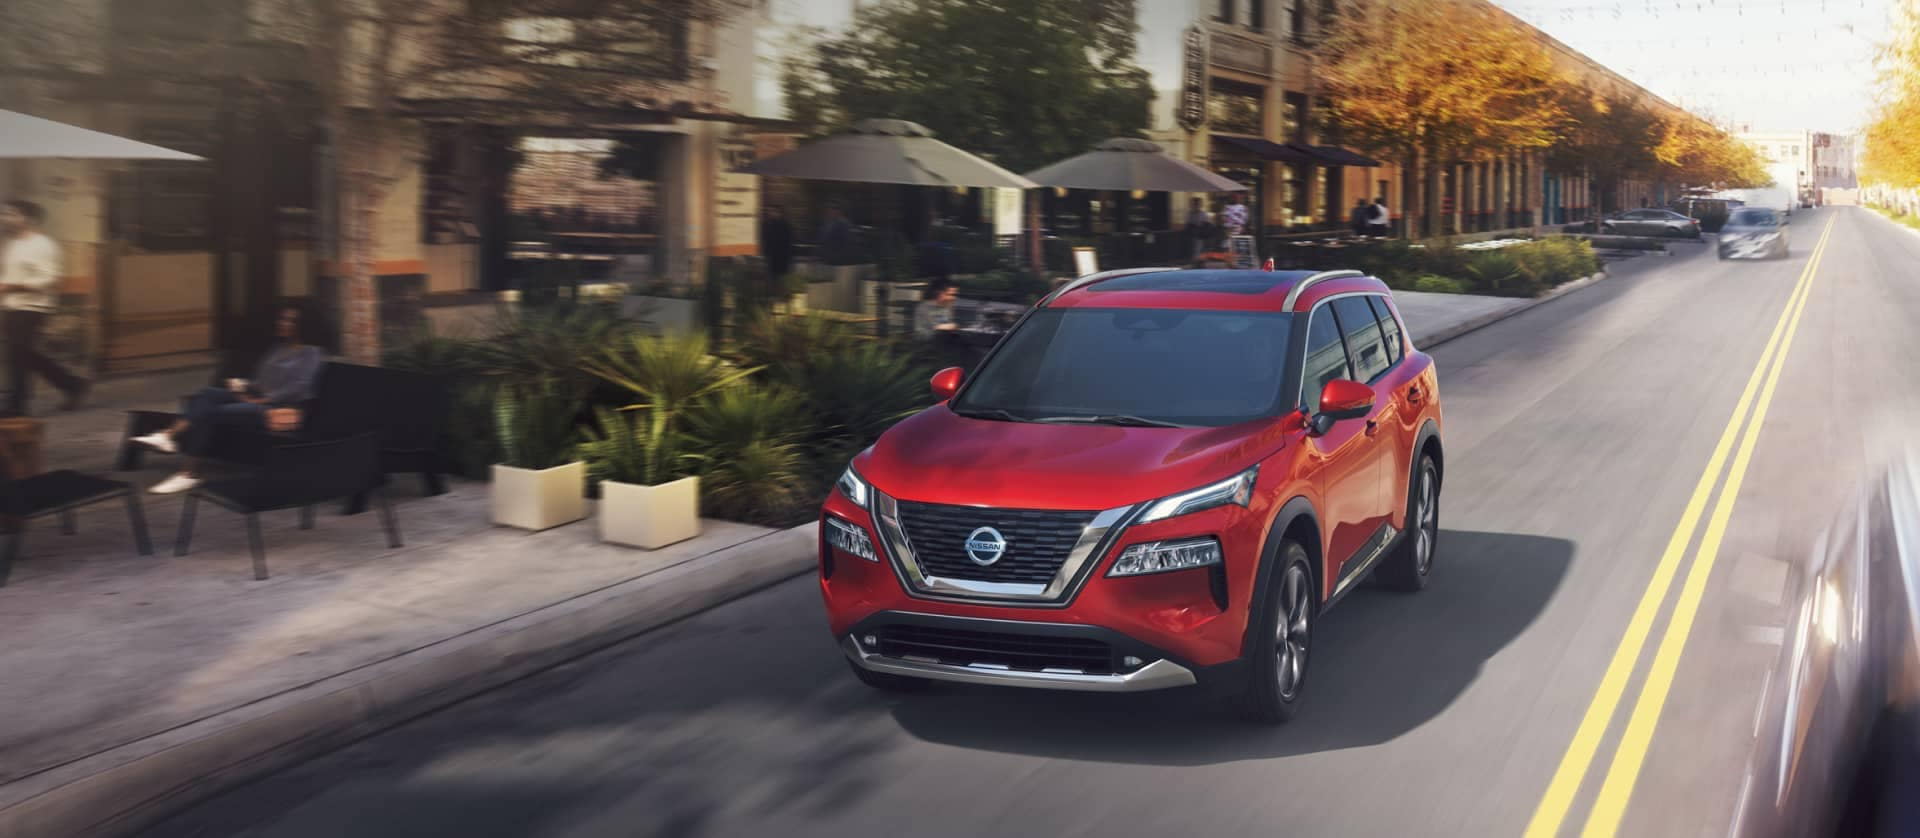 new red nissan rogue driving down city street